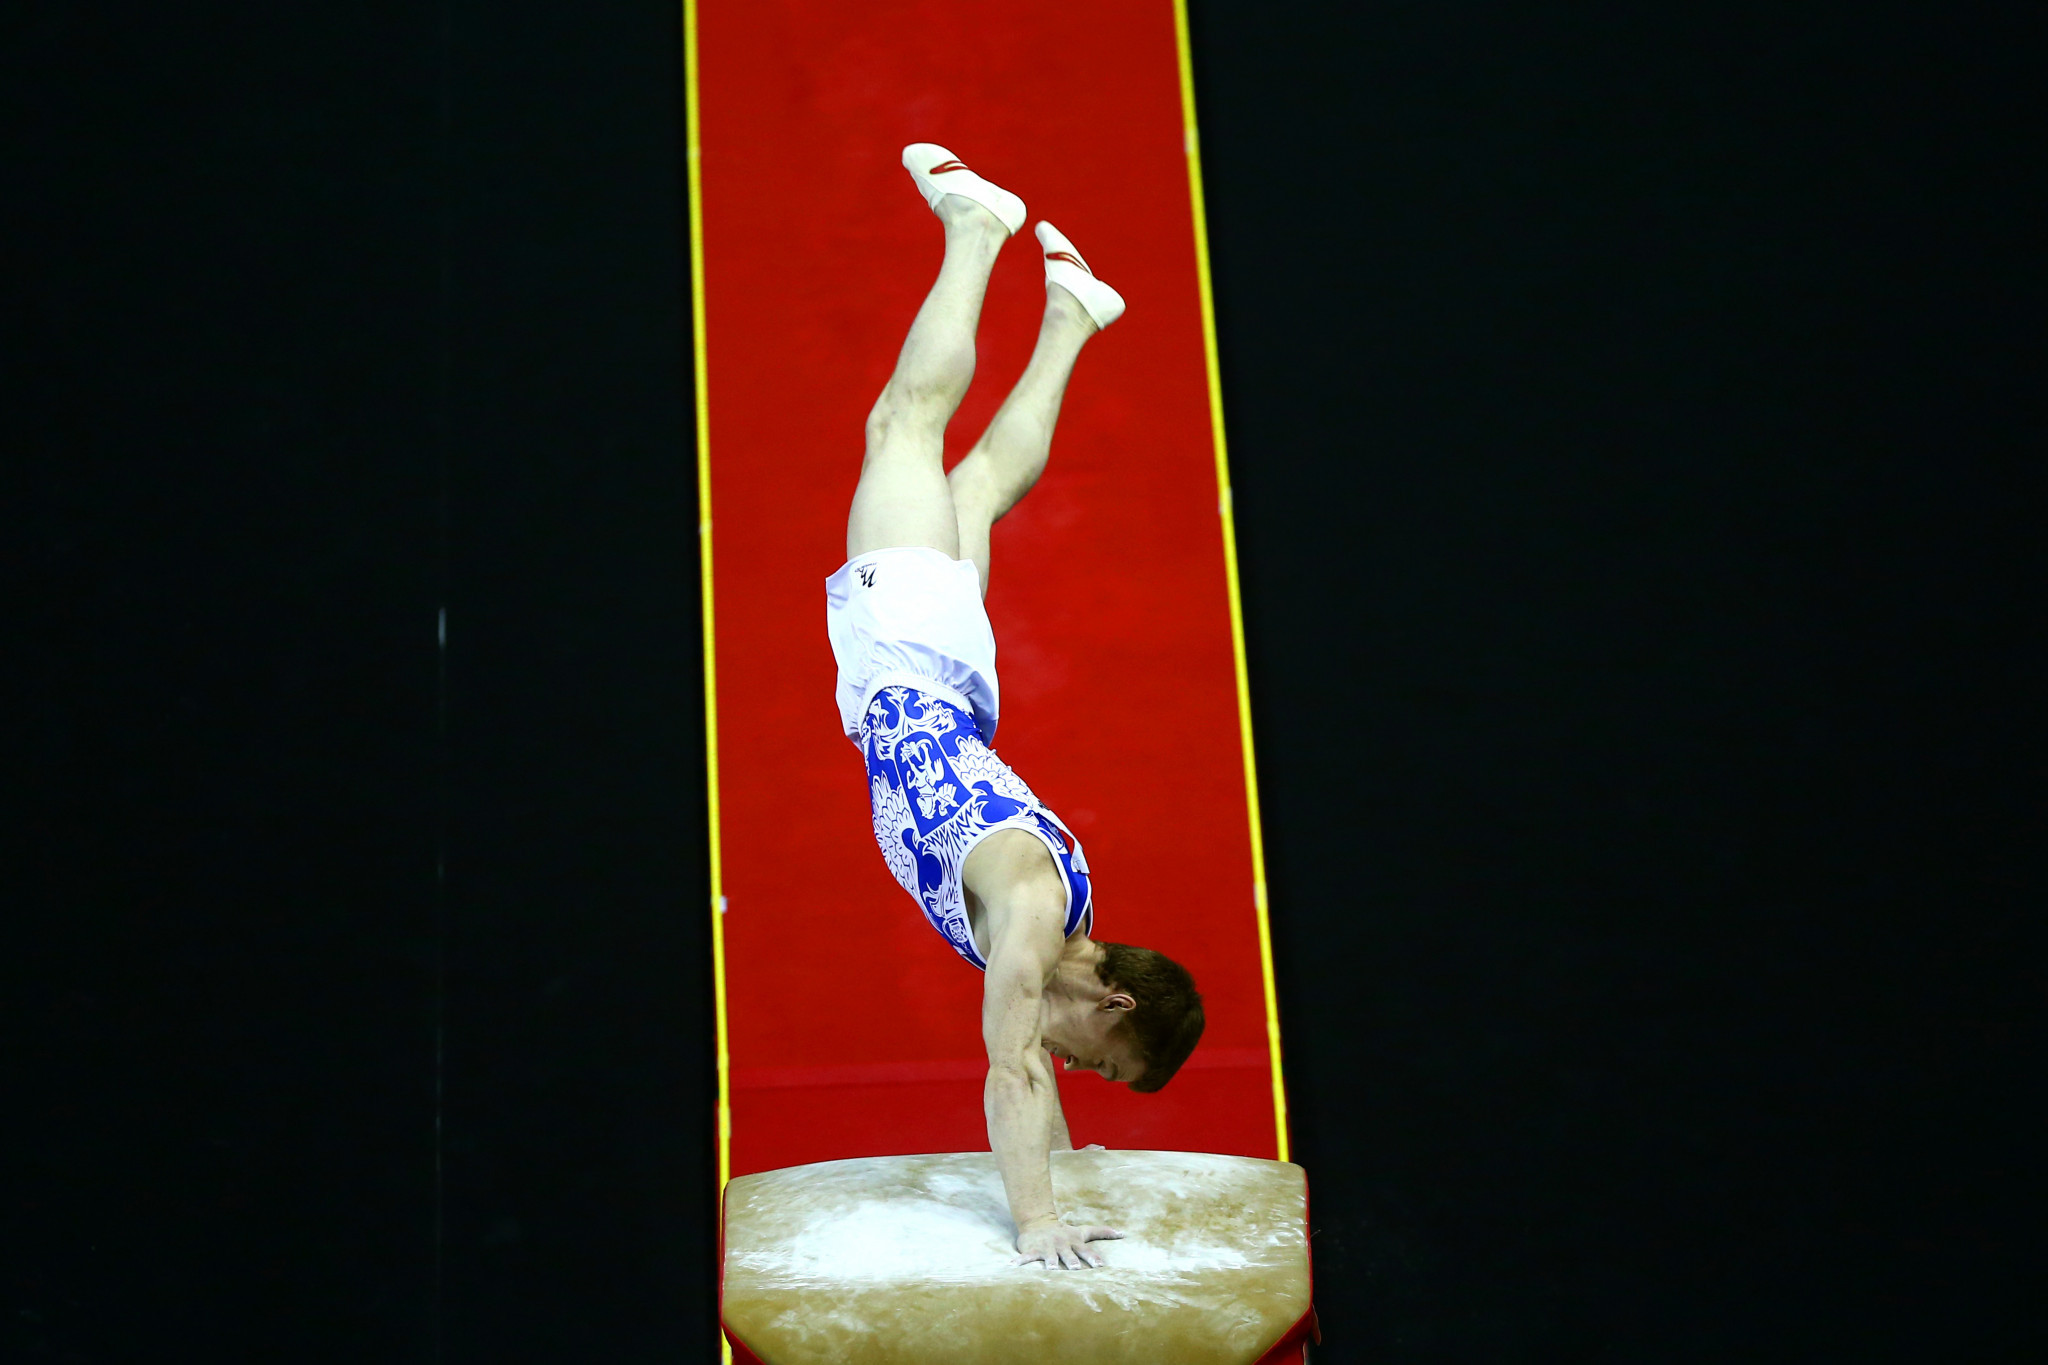 Srbic follows fellow Croatian Seligman into FIG World Challenge Cup finals in Osijek